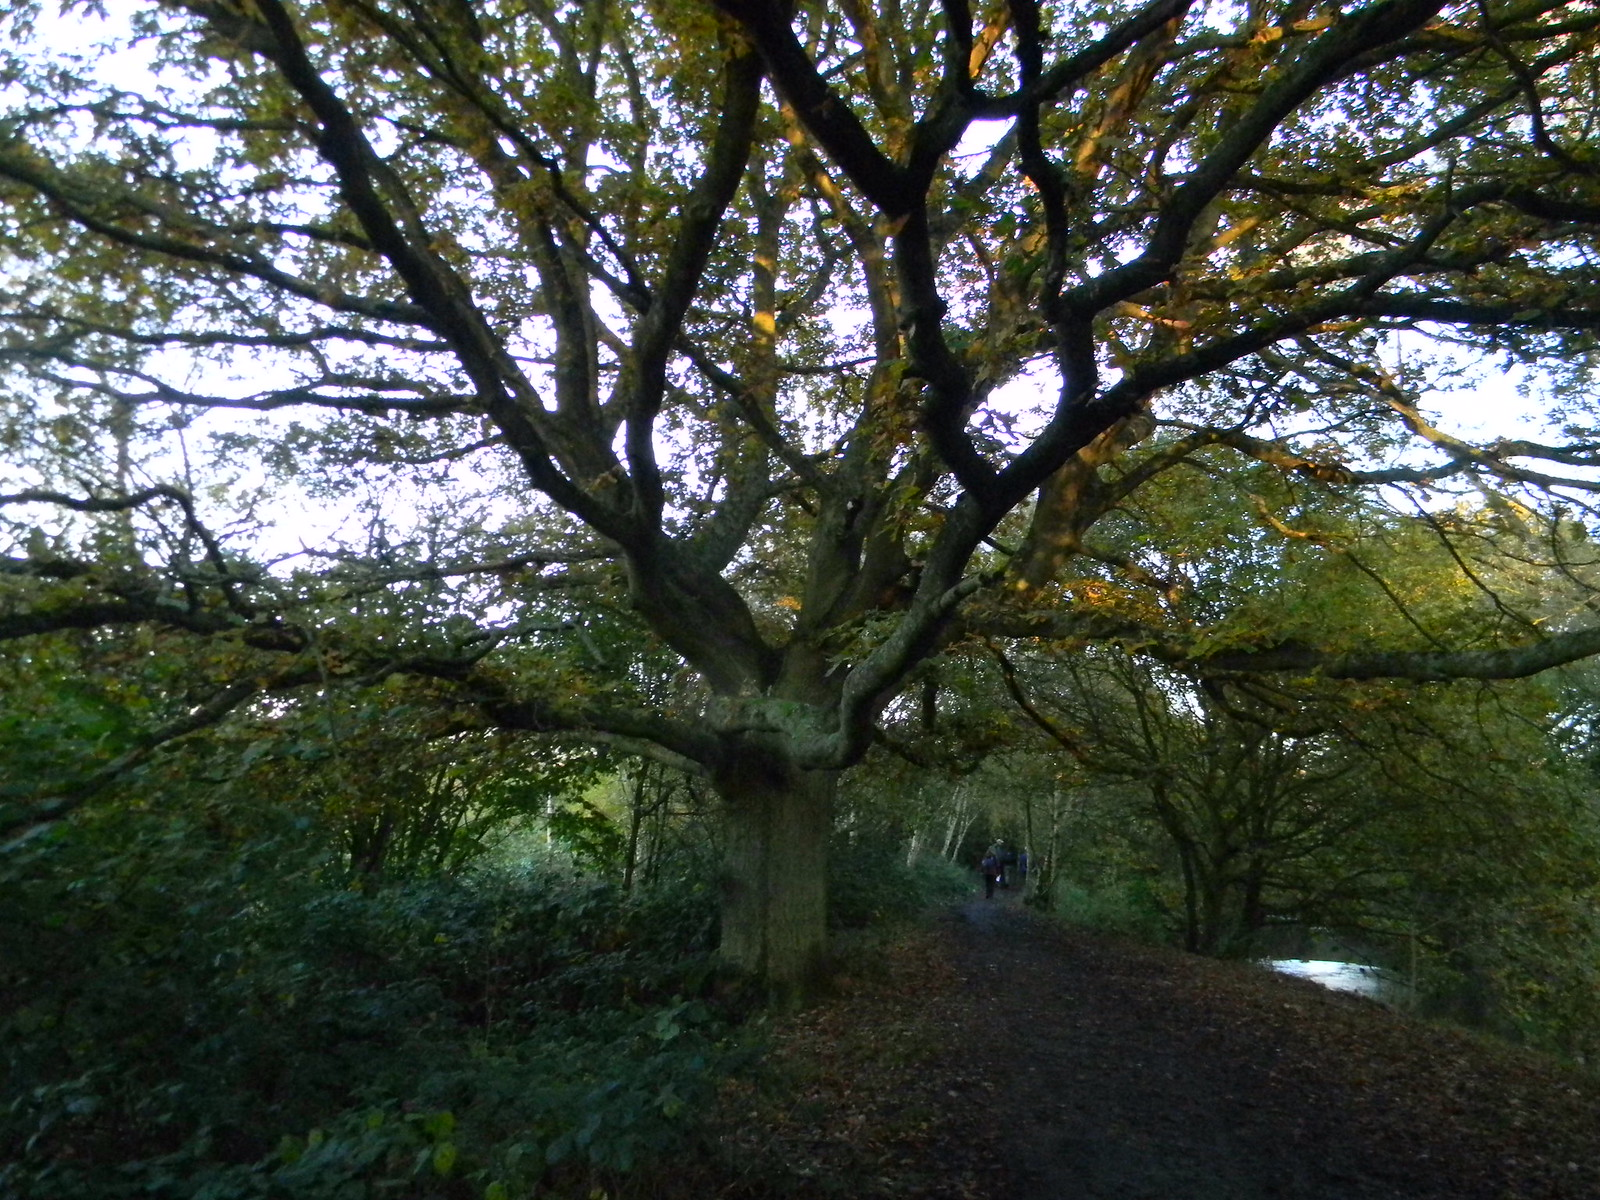 Grand old tree - Blackwater Crowthorne to Sandhurst (avoiding Eversley)